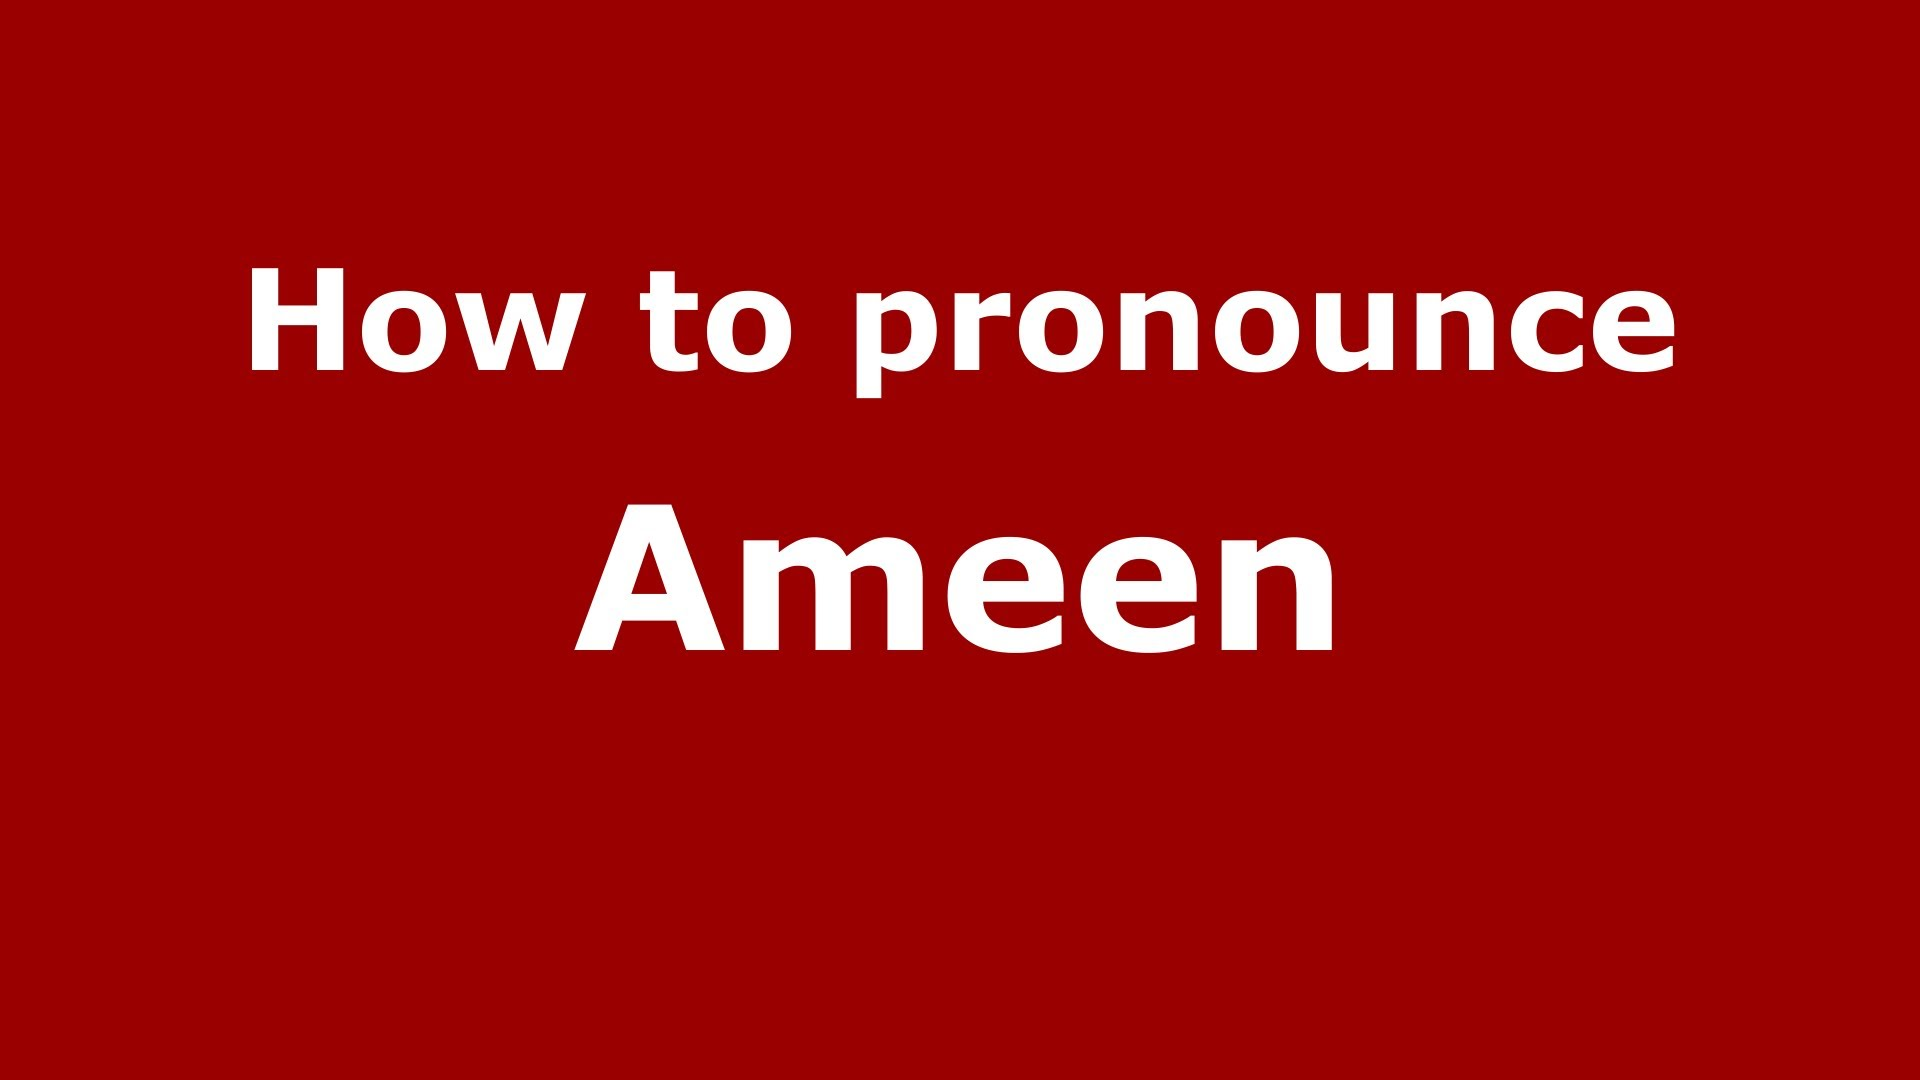 Ameen Name Wallpaper